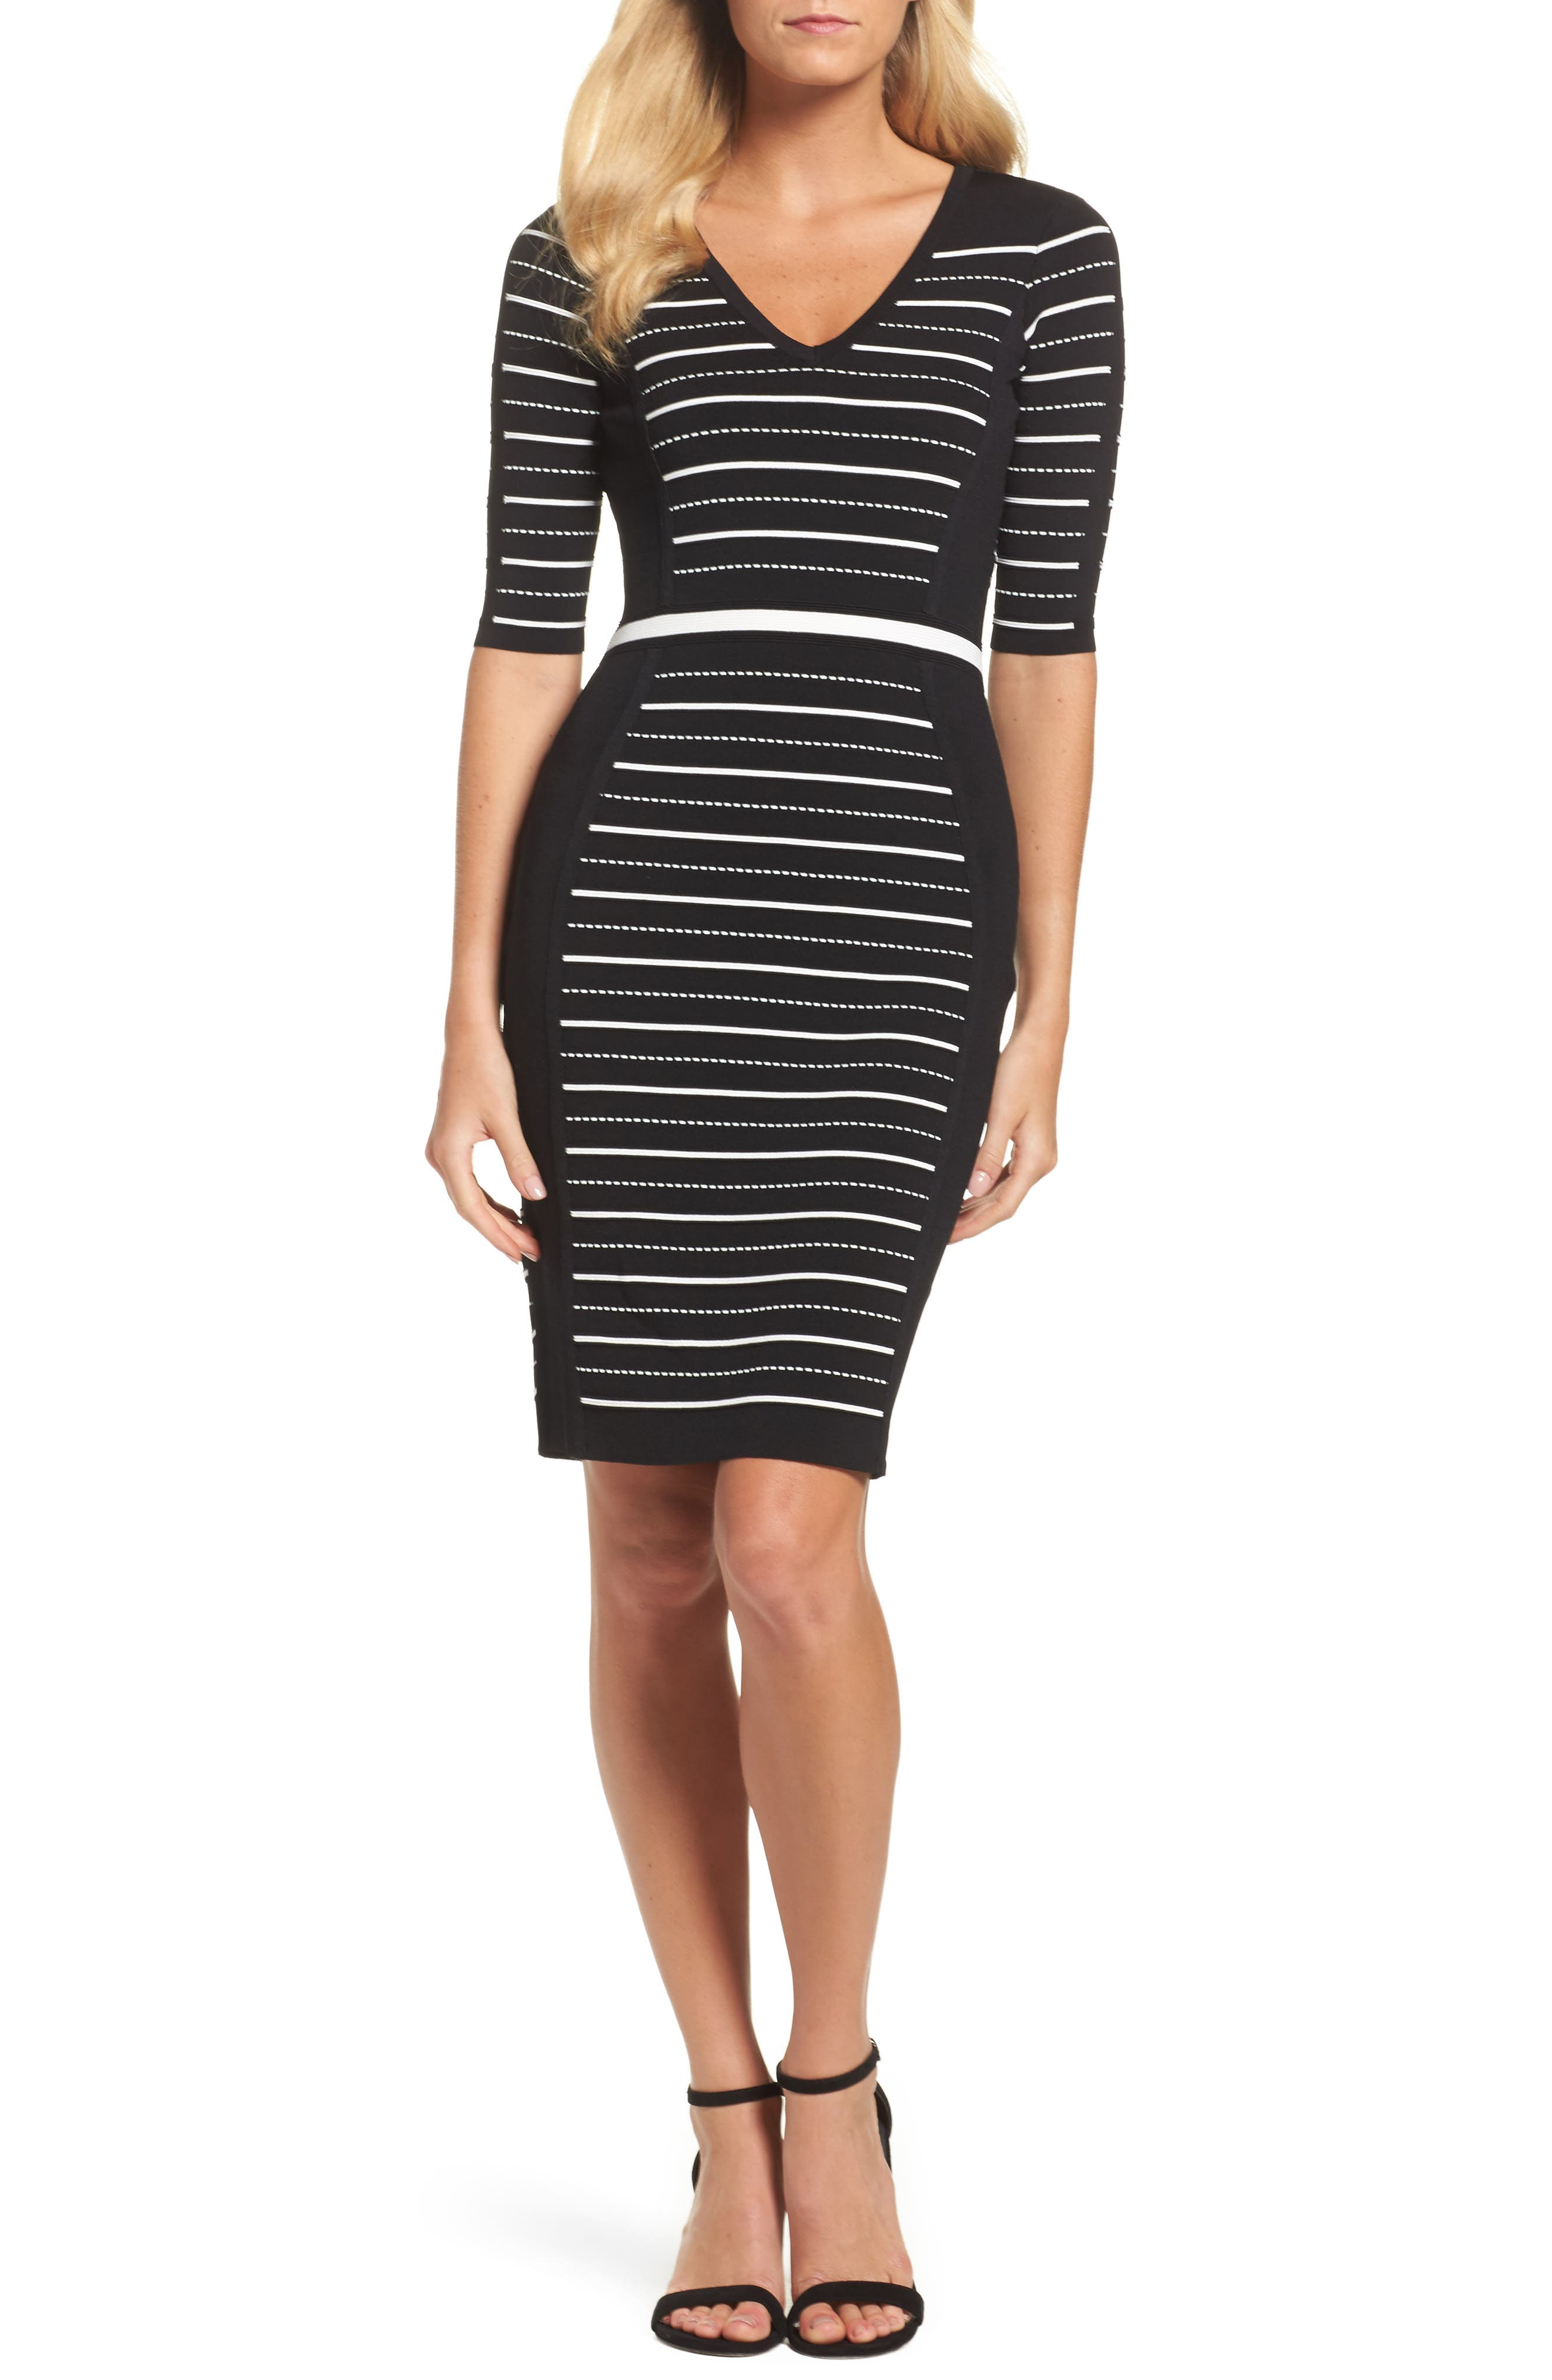 Adrianna Papell Body-Con Dress